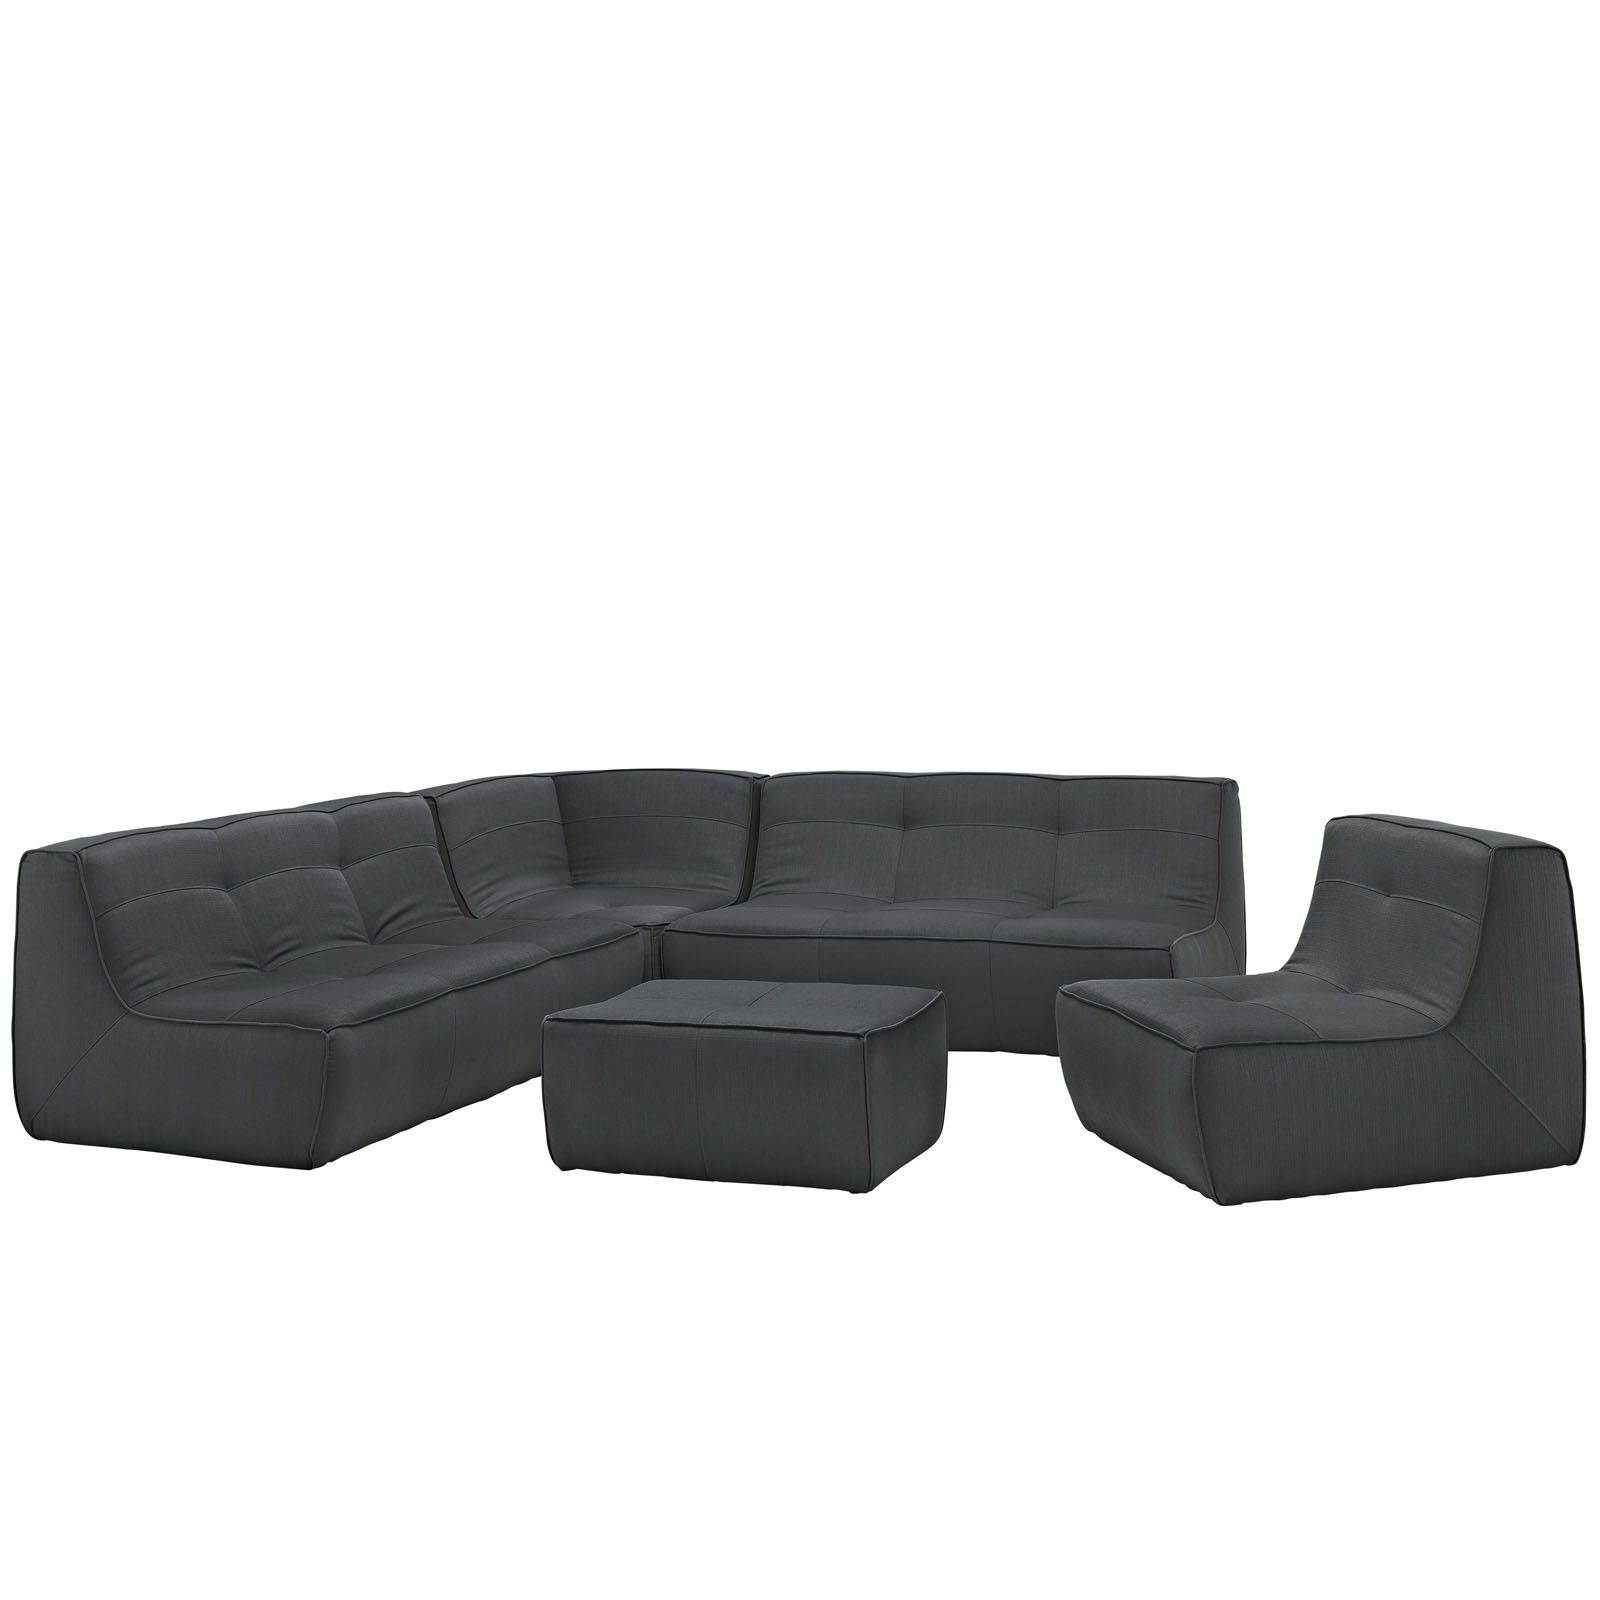 Best Modway Align 5 Piece Upholstered Sectional Sofa Set 400 x 300